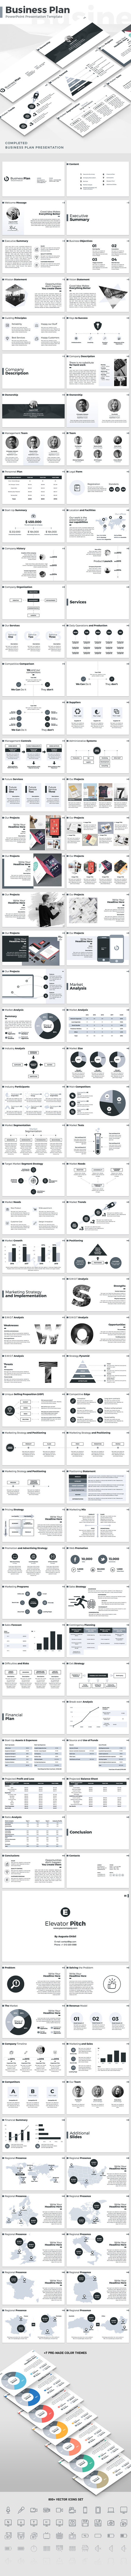 Business Plan - PowerPoint Presentation Template - PowerPoint Templates Presentation Templates